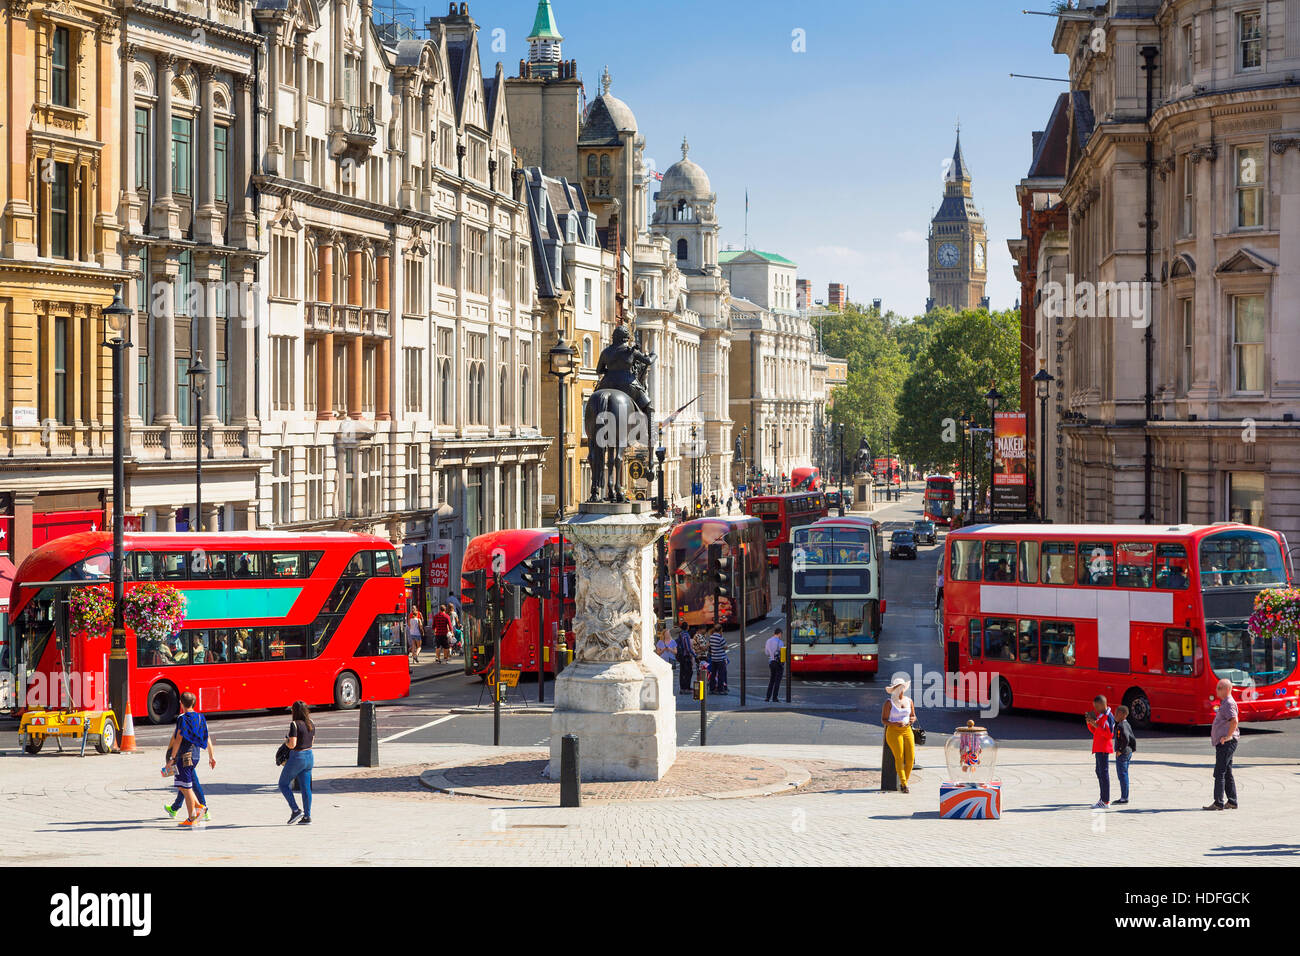 LONDON, UNITED KINGDOM - Traffic on Trafalgar square - Stock Image